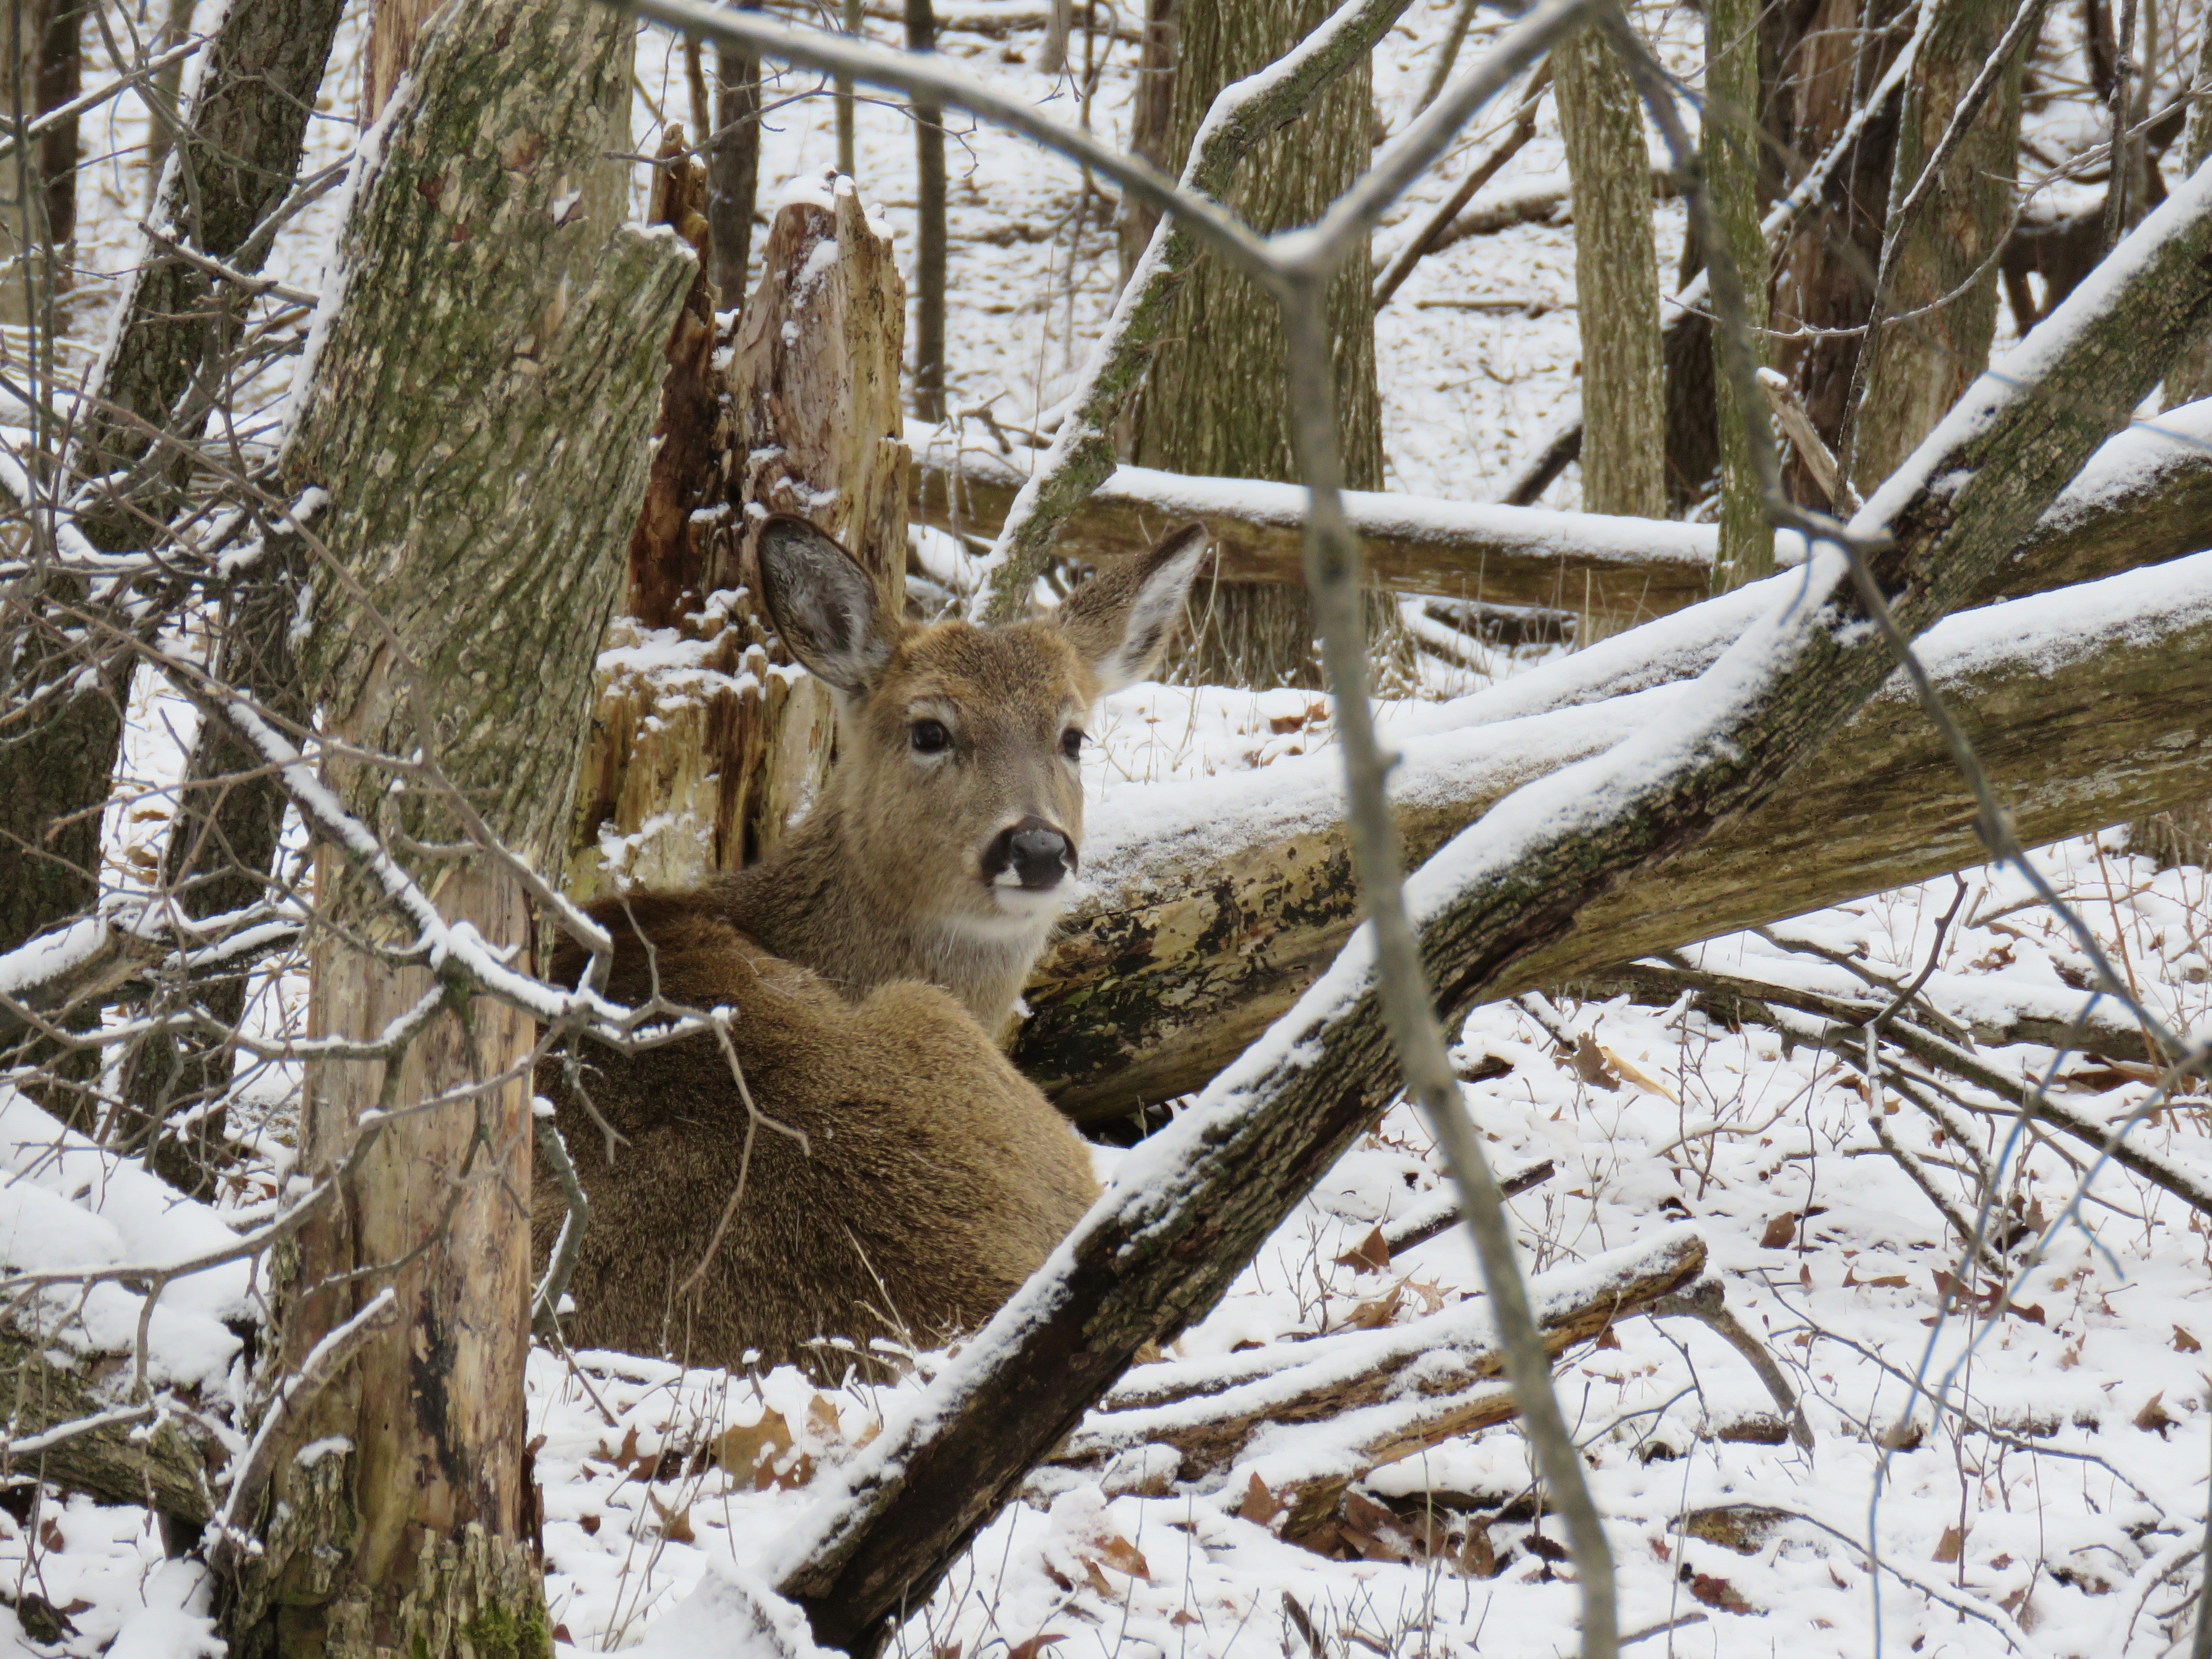 A deer beds down in a wooded area in the snow